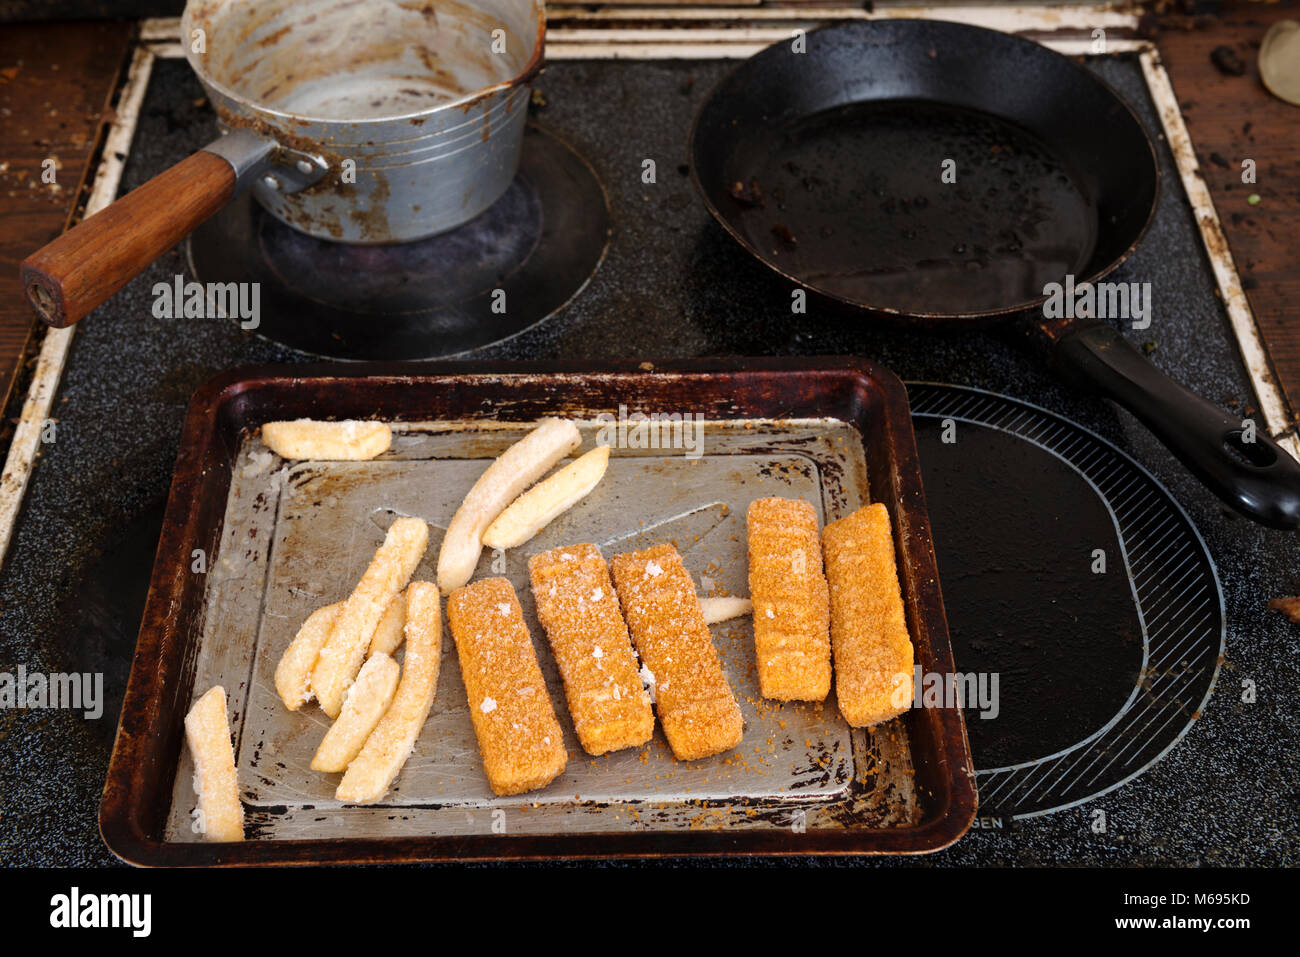 Dirty cooker - Stock Image